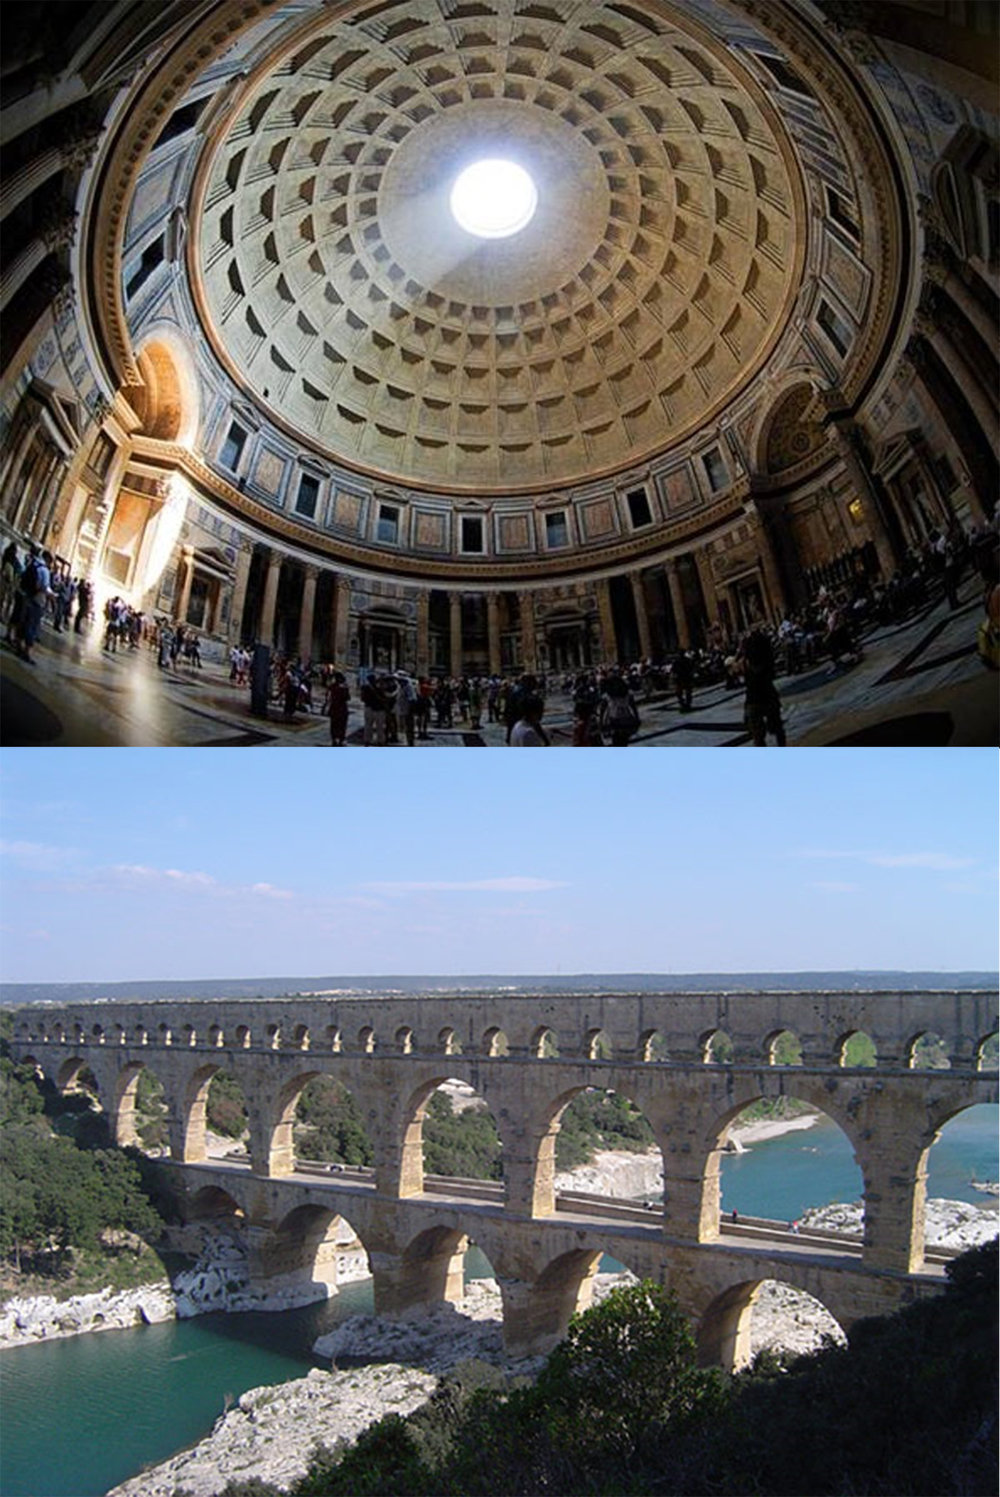 Arches, vaults and domes such as the Pantheon in Rome and aqueducts across Europe were among the Romans' greatest achievements as builders.